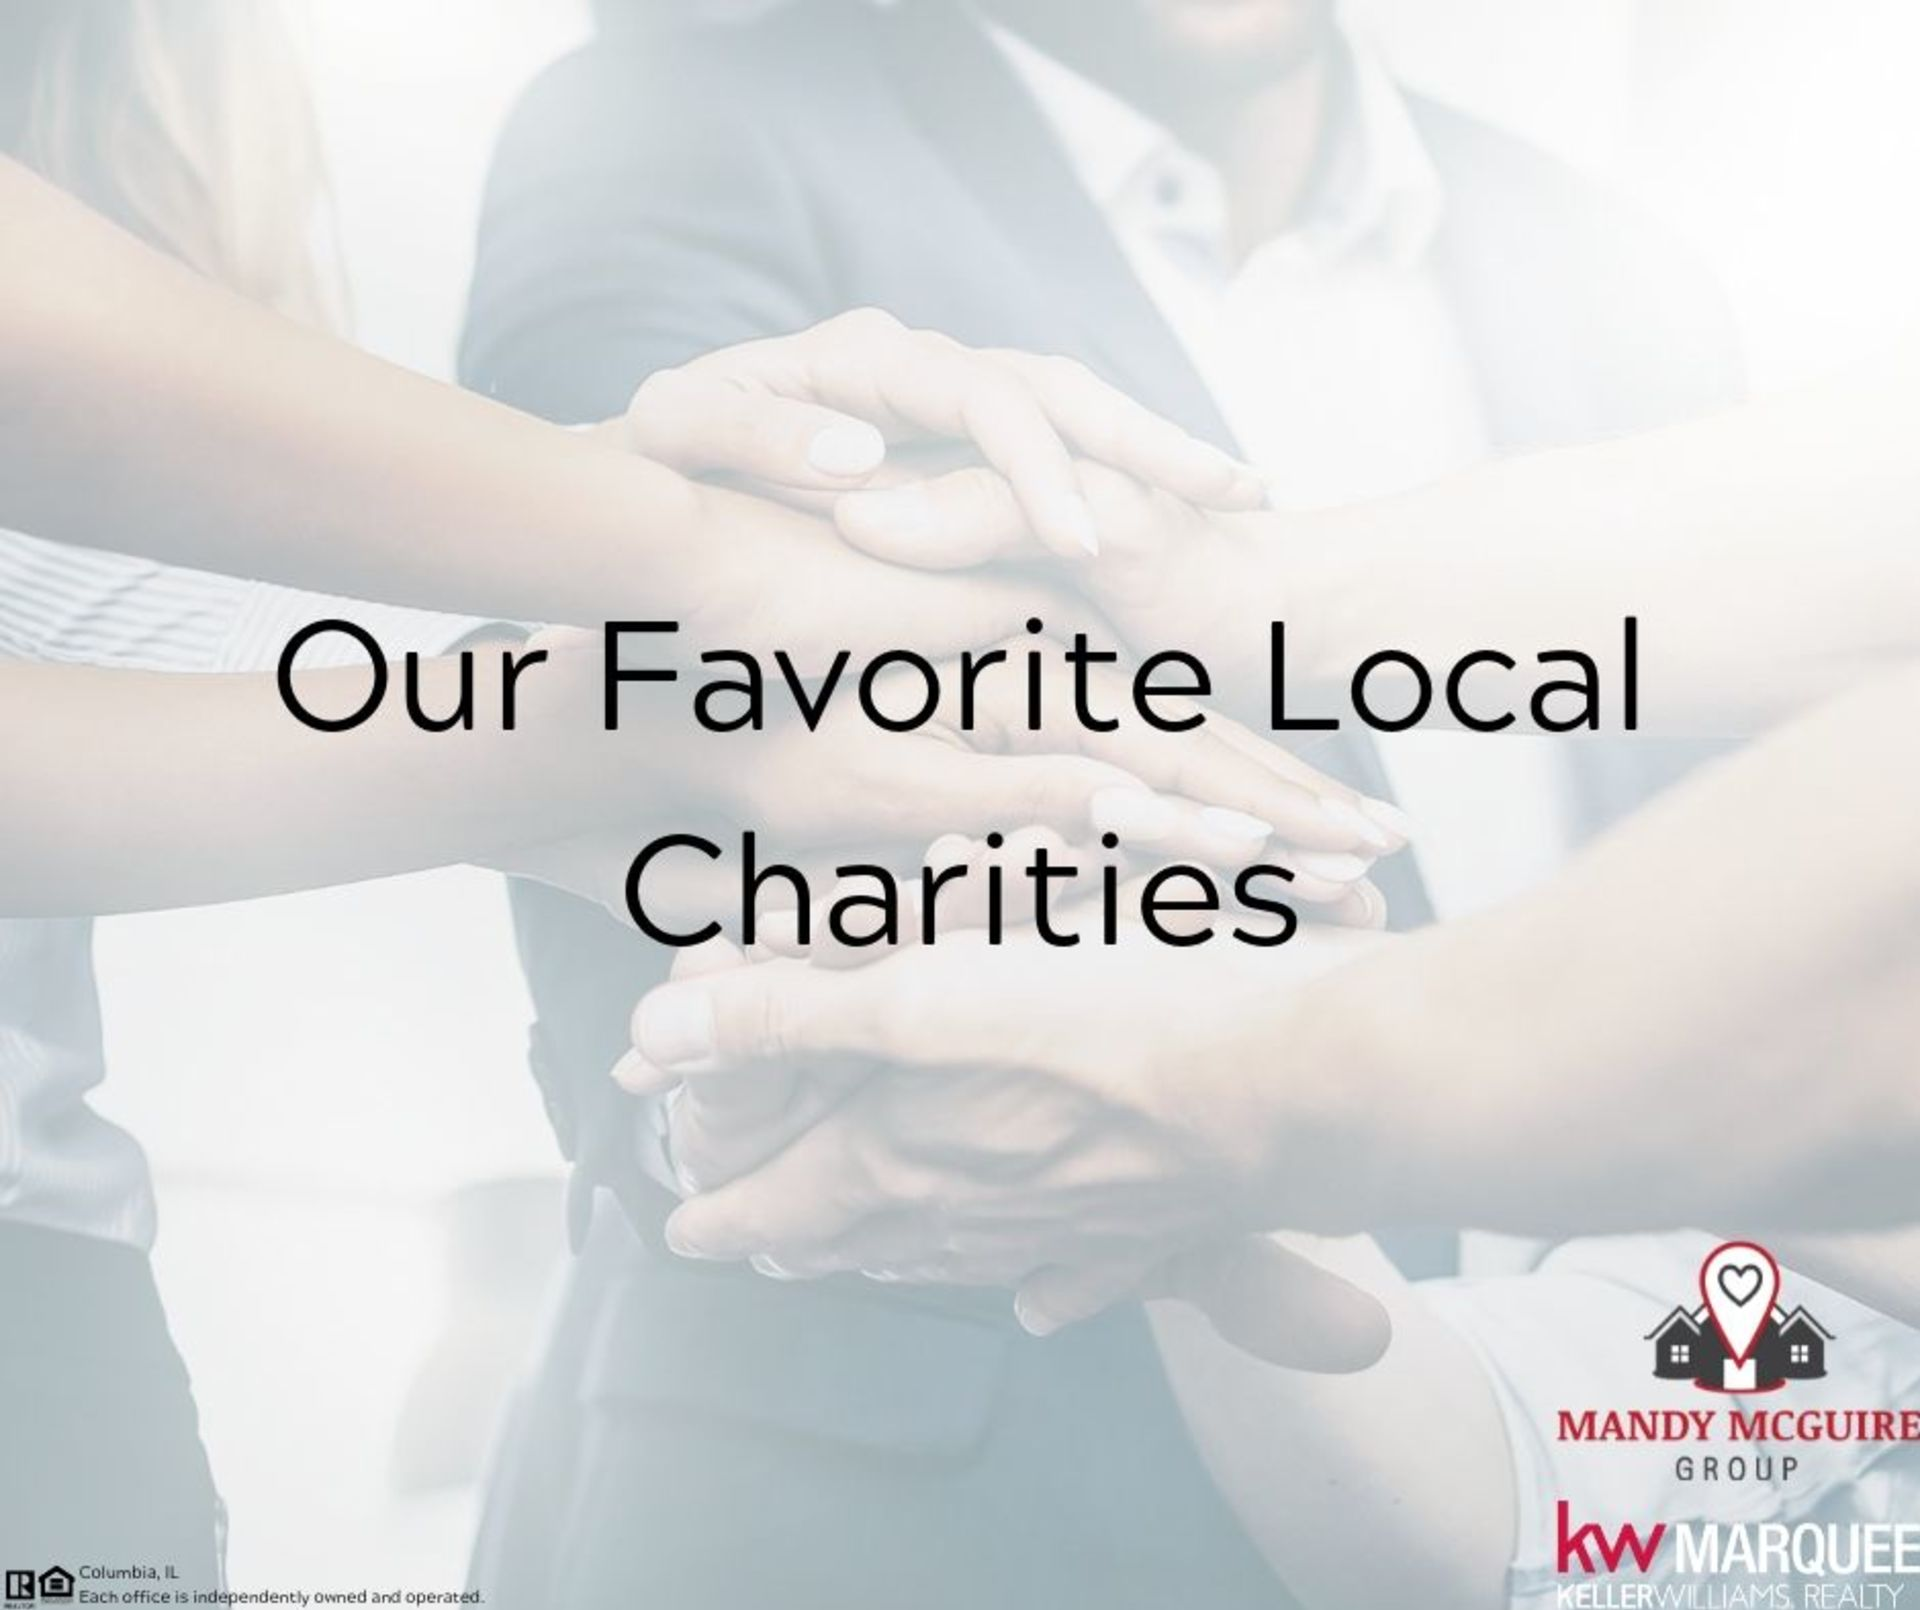 Our Favorite Local Charities